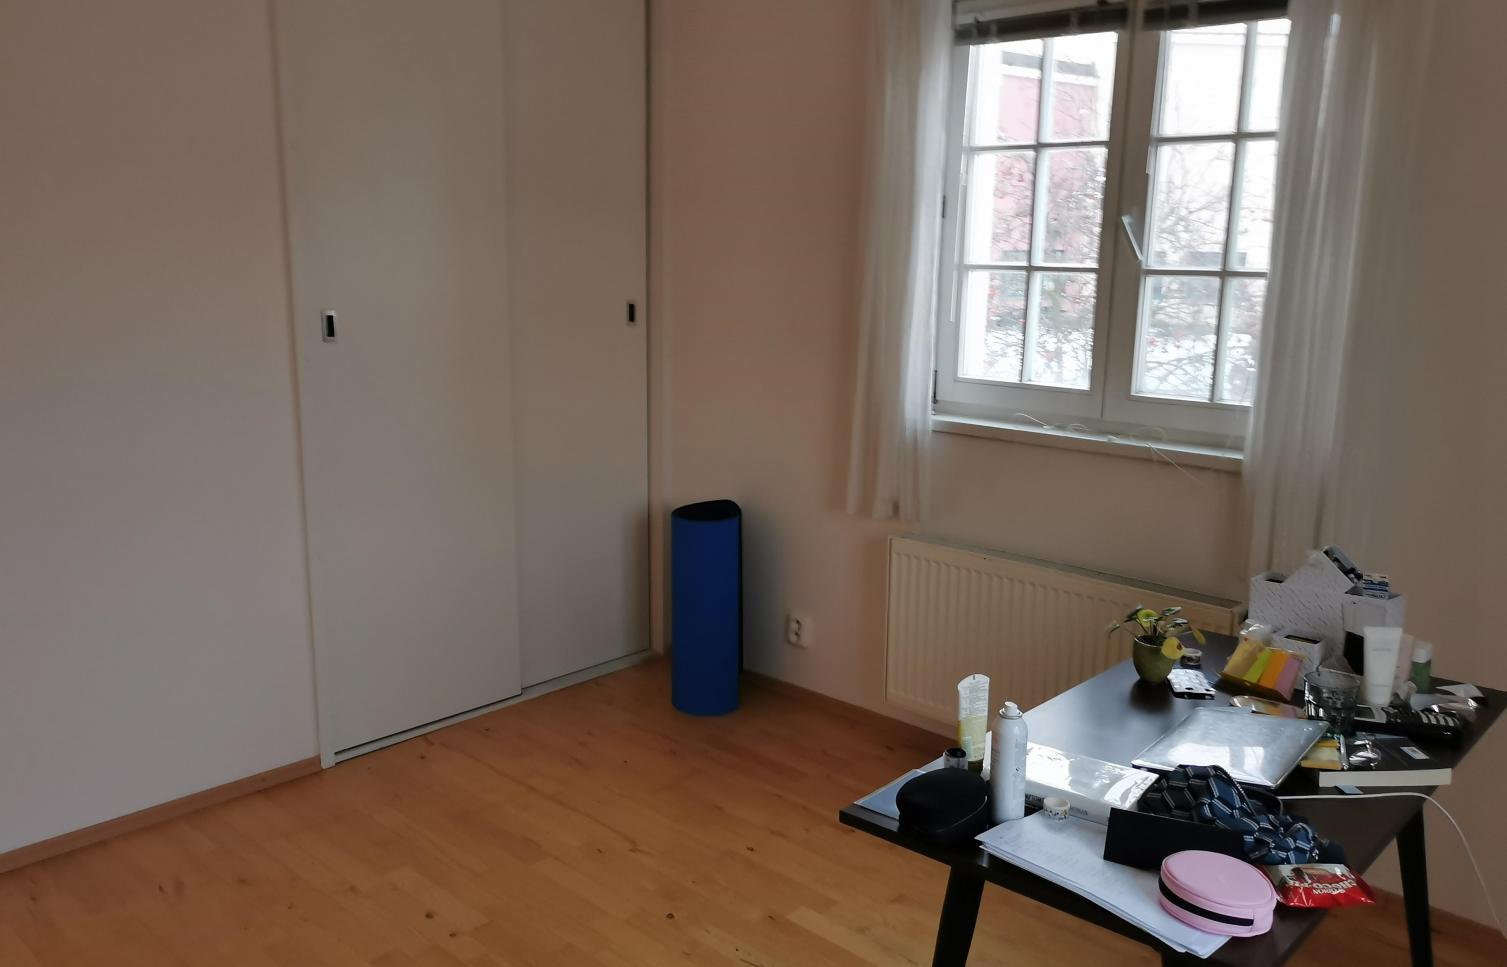 HOUSE FOR RENT, street K Parku, Prague 6 - Nebušice